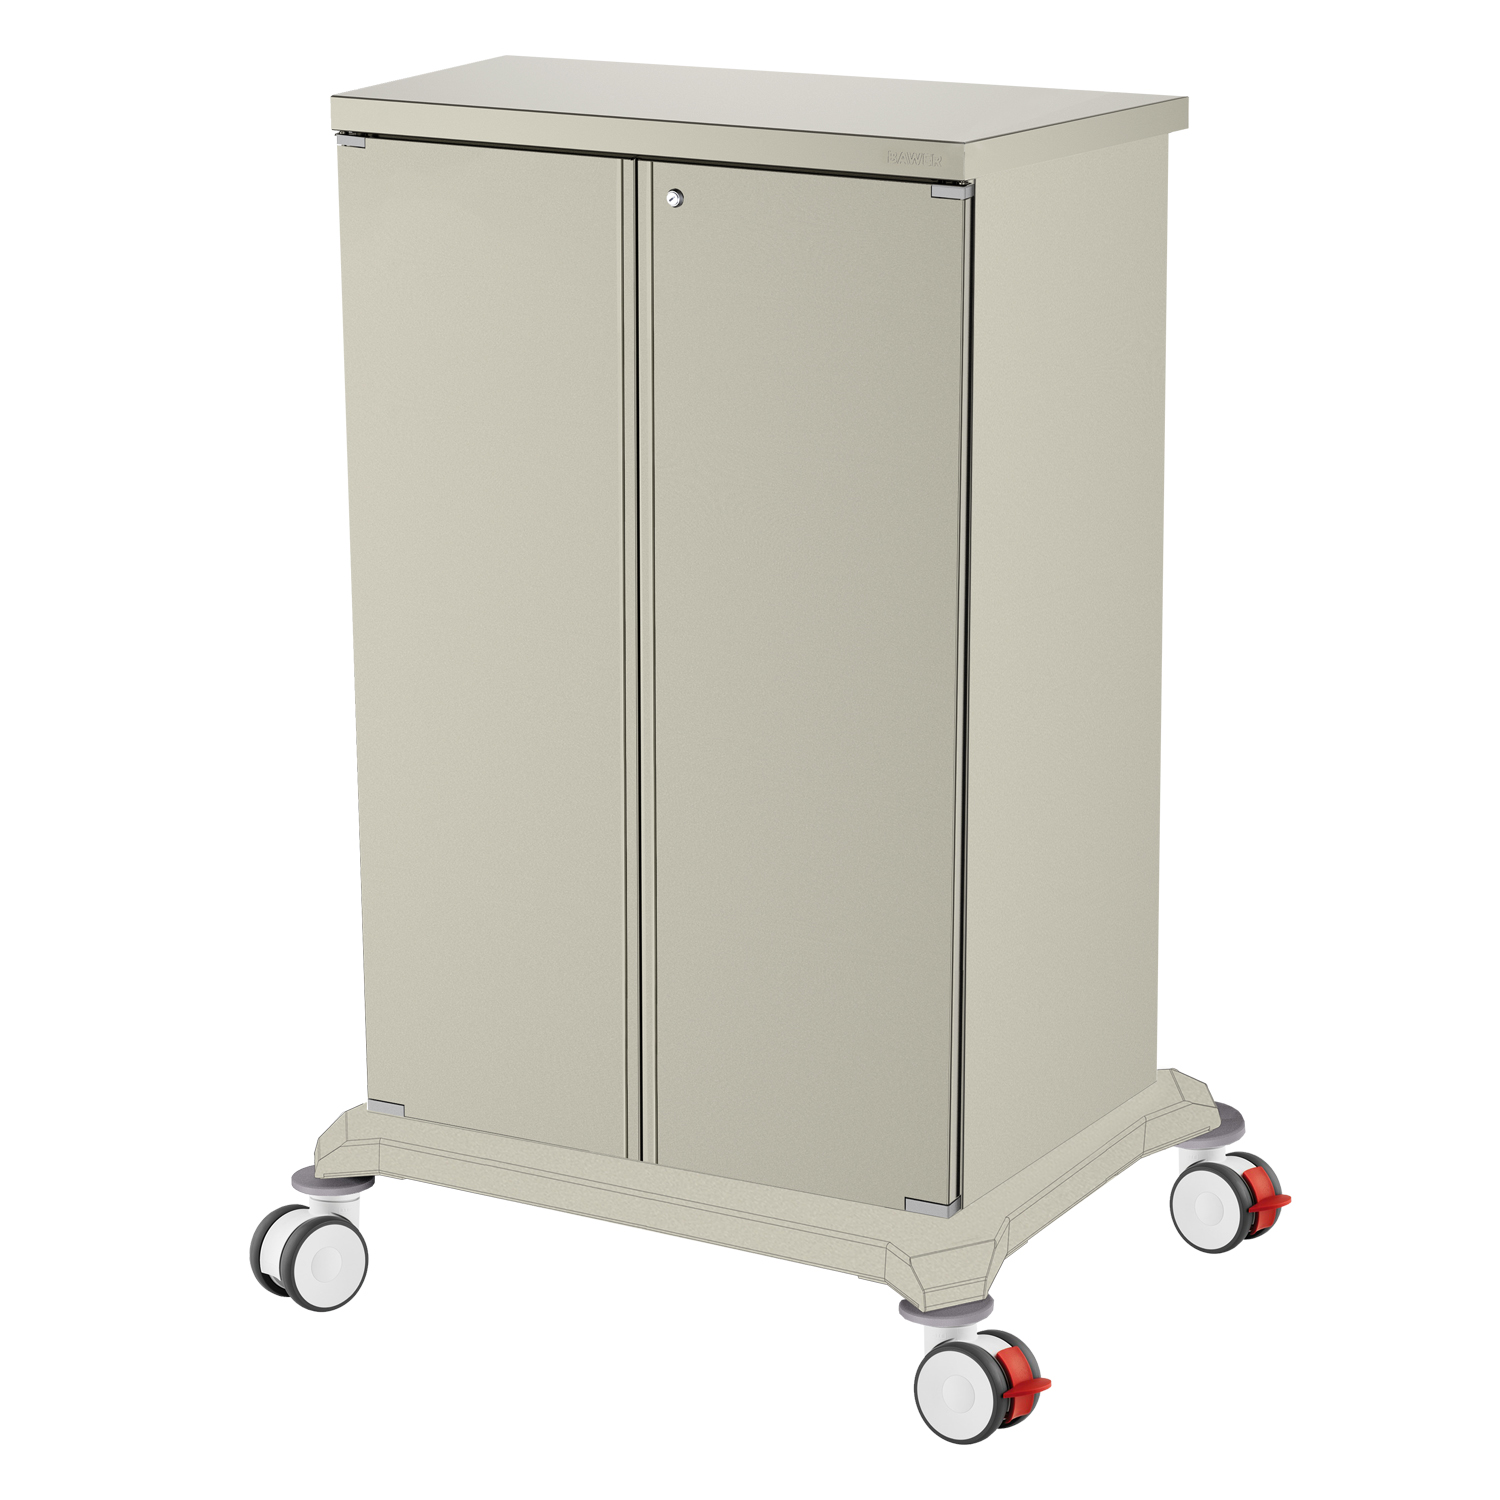 Chariot Porte Meuble Chariot Armoire Sur Roues Bawer Medical